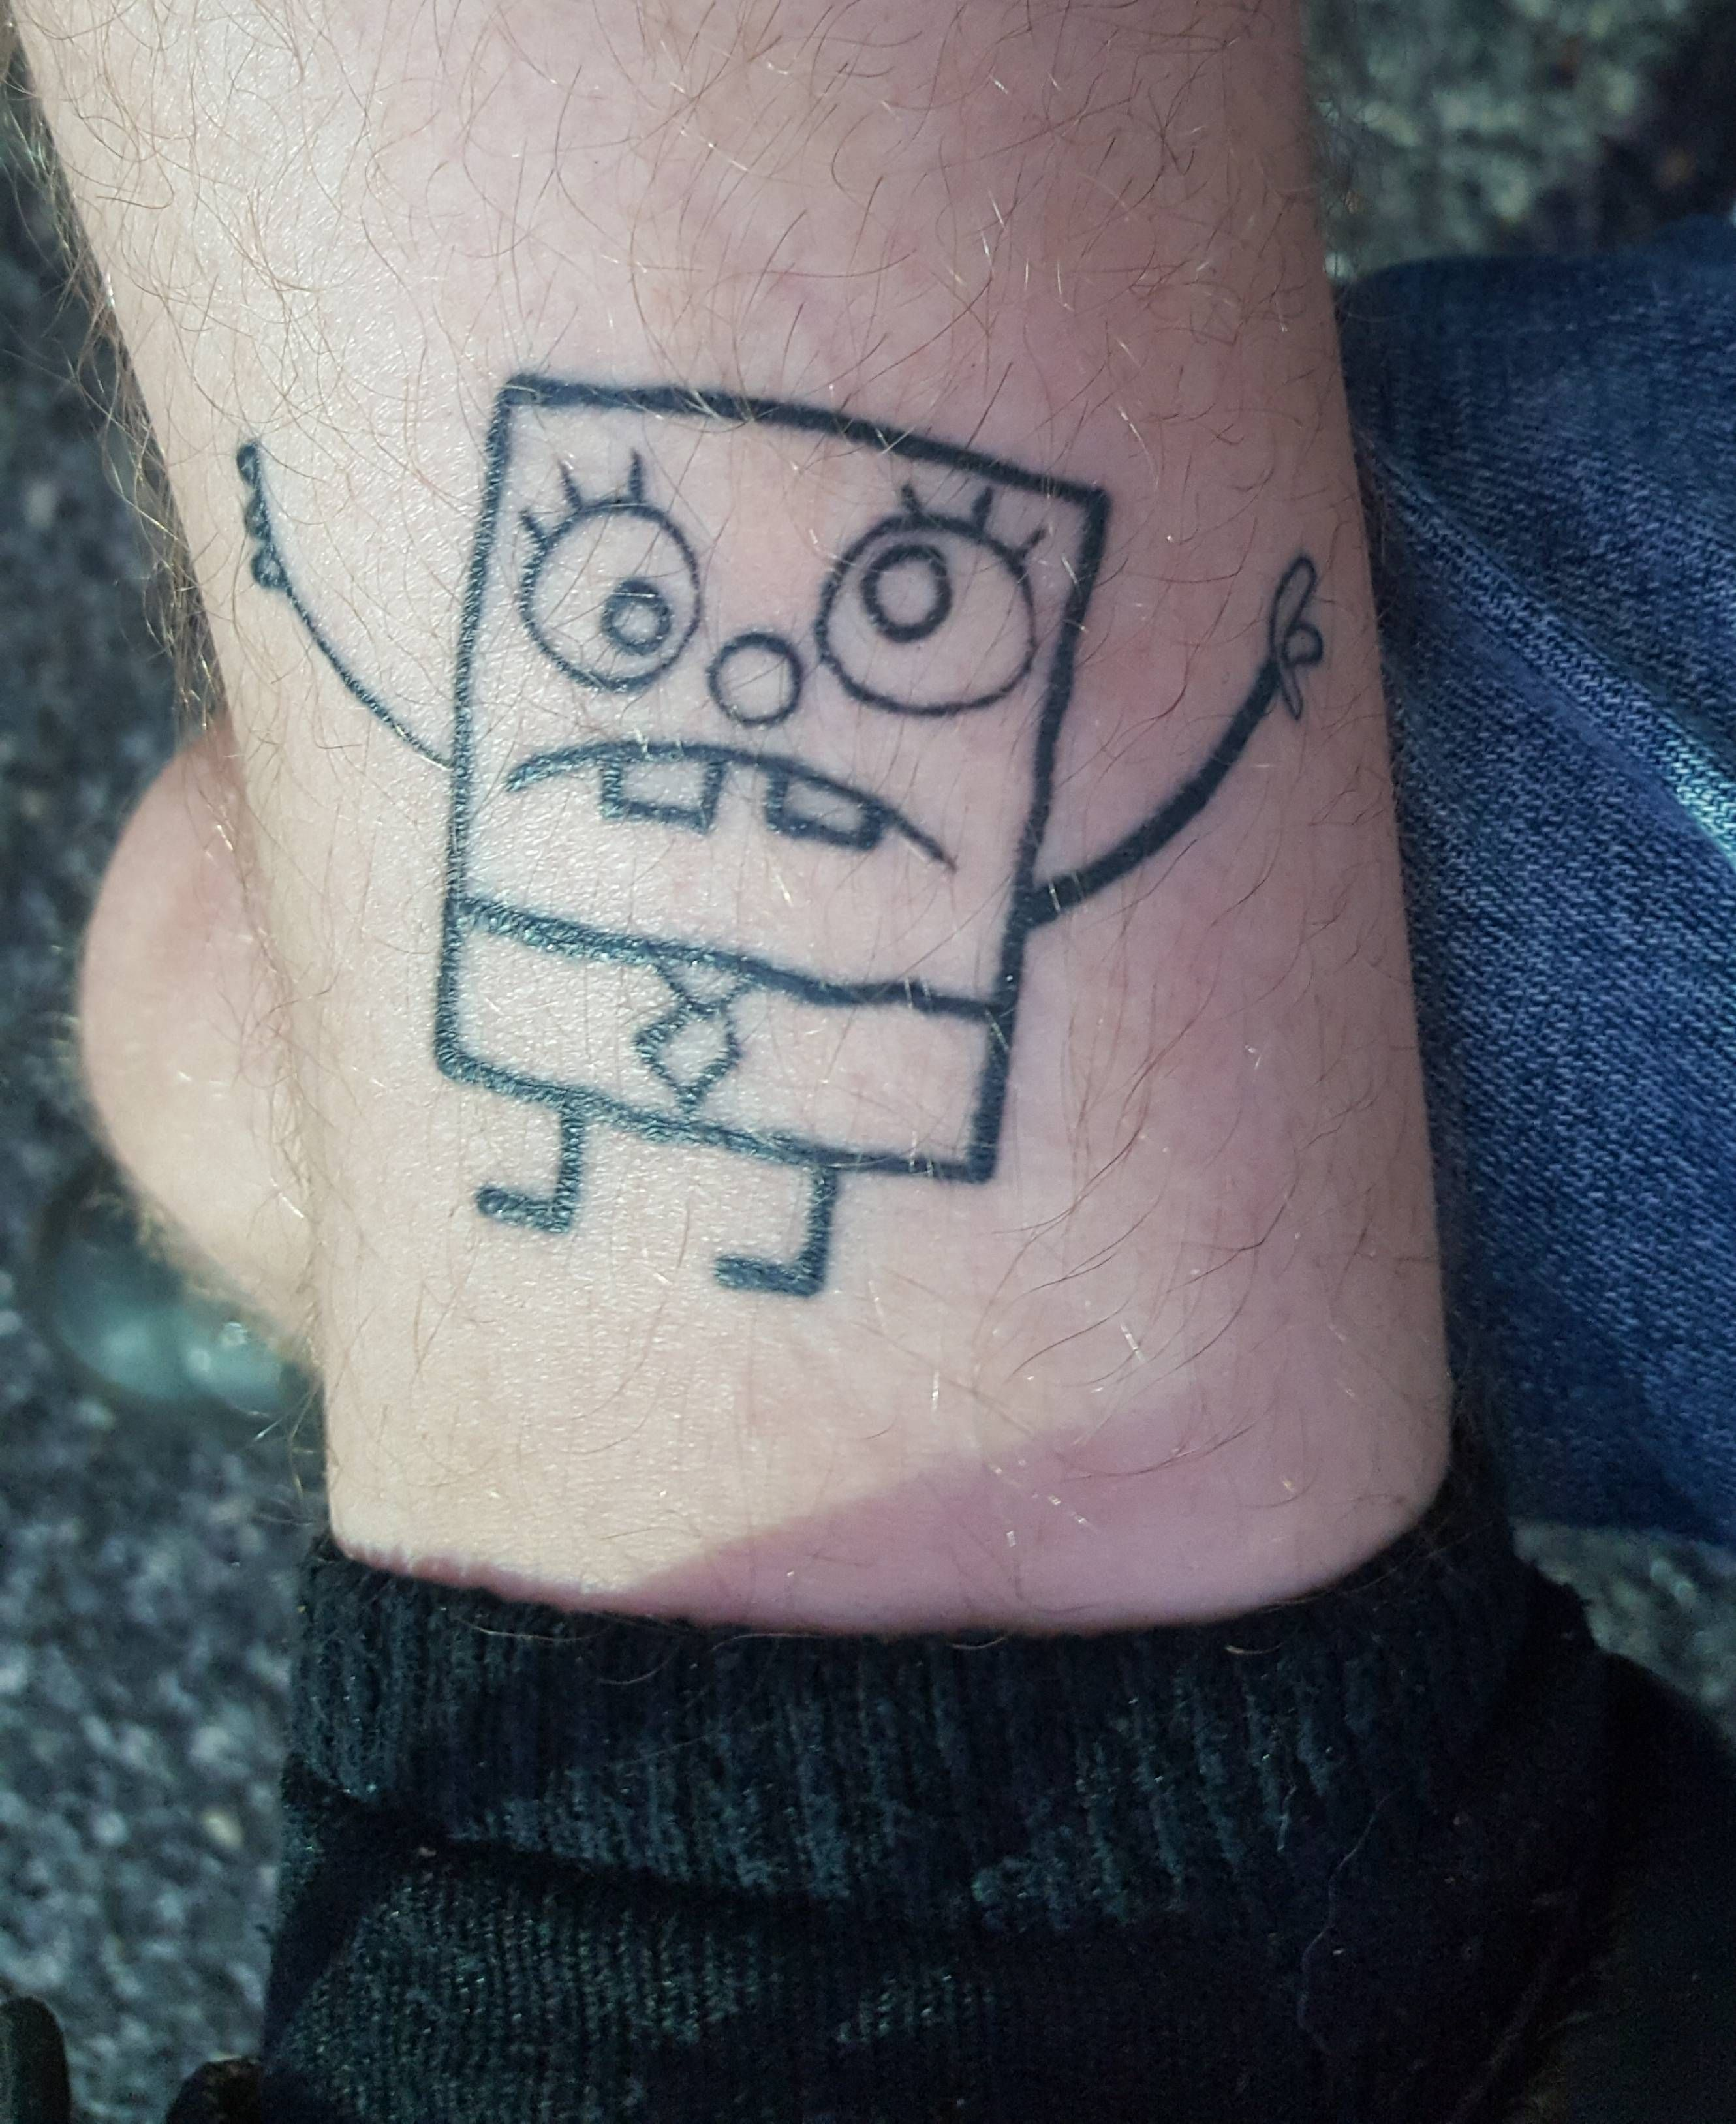 I see your doodlebob tattoo and raise you mine got it